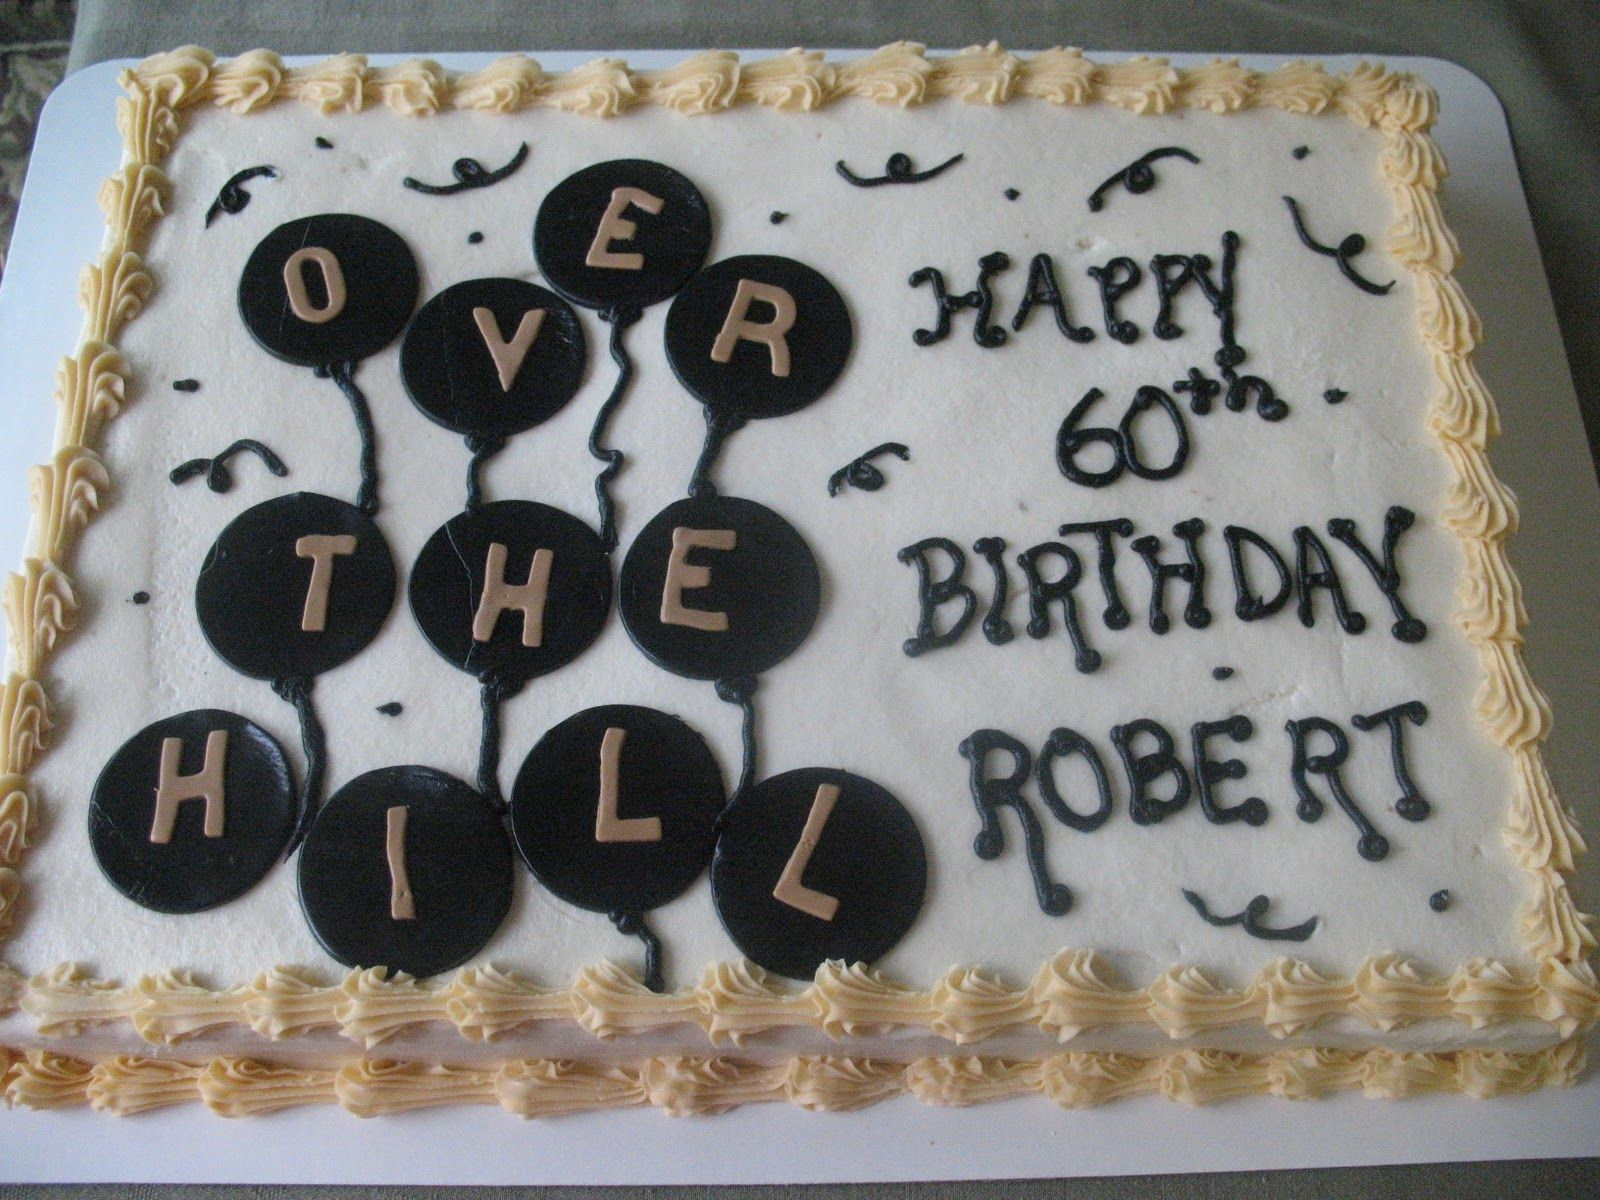 over the hill birthday cakes Google Search Cakes Pinterest